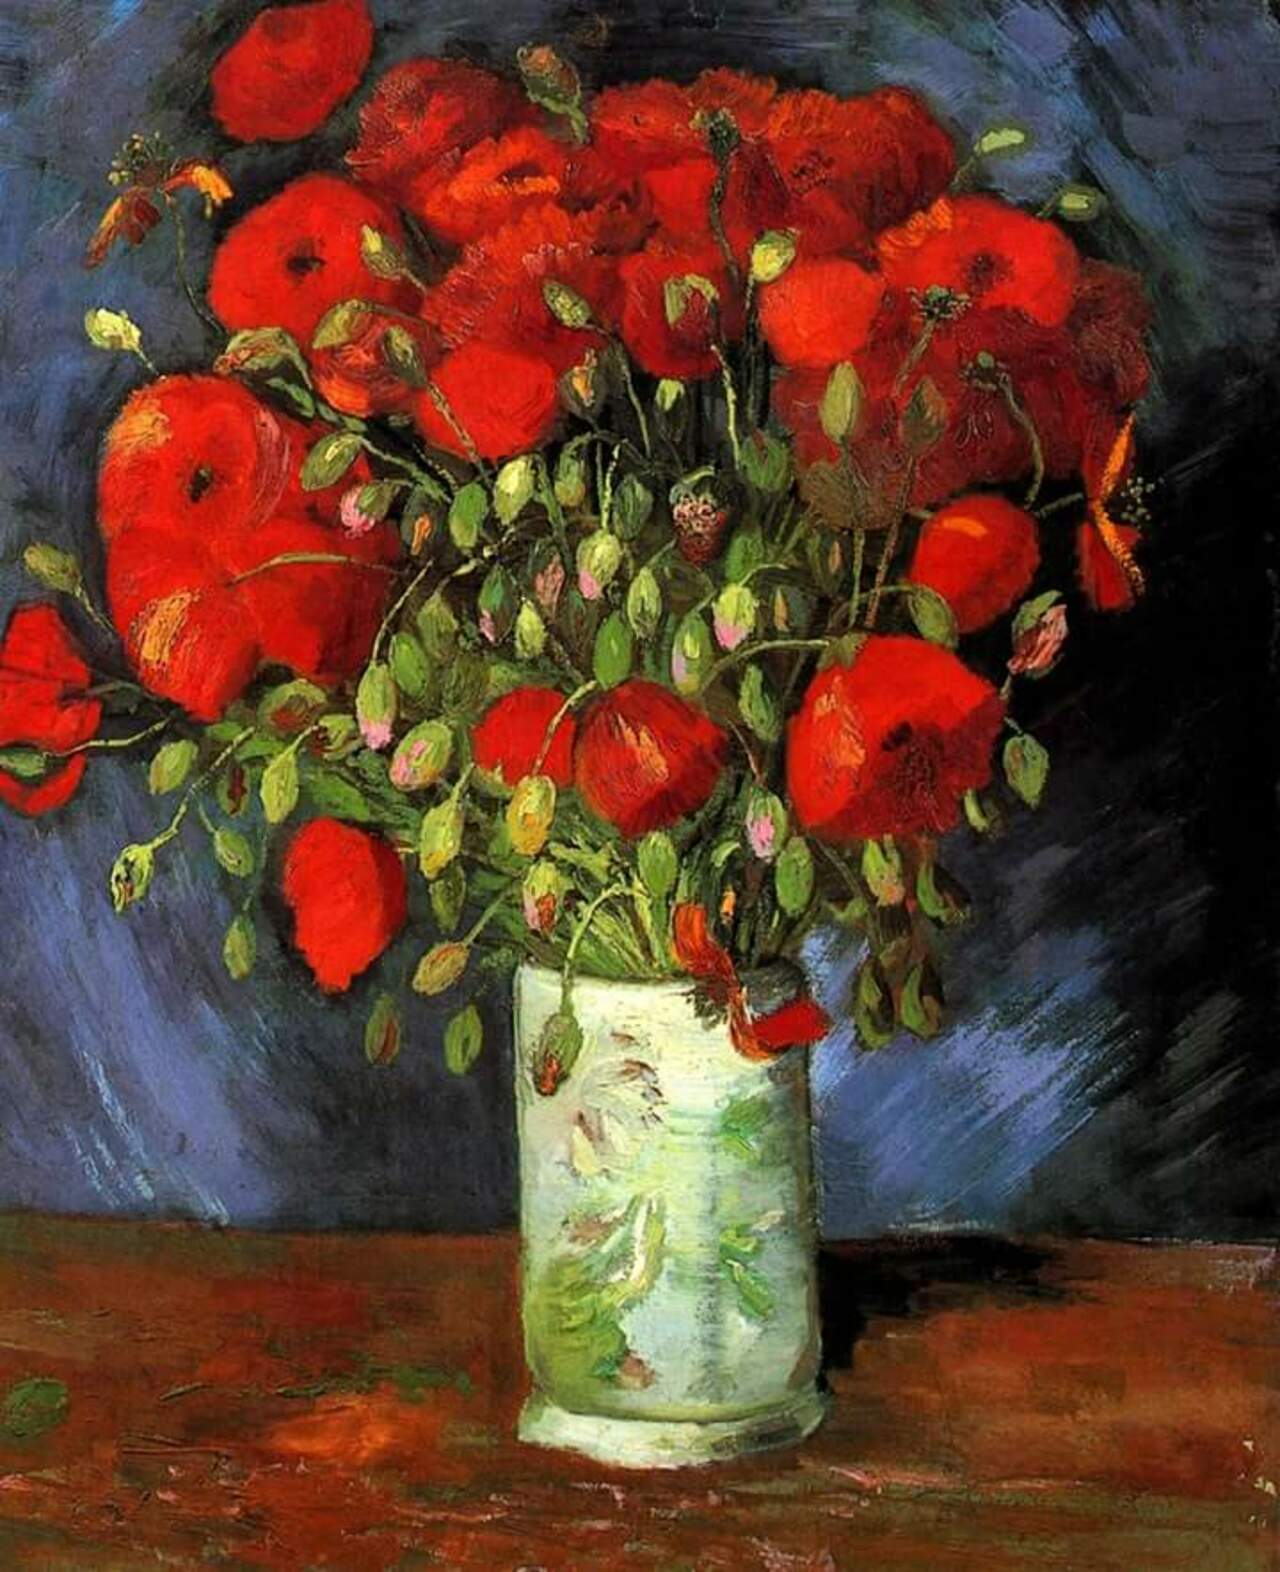 RT @xabier2013: Vase with red poppies. #VanGogh #arte #art #pittura #painting https://t.co/k3vwN4elmR